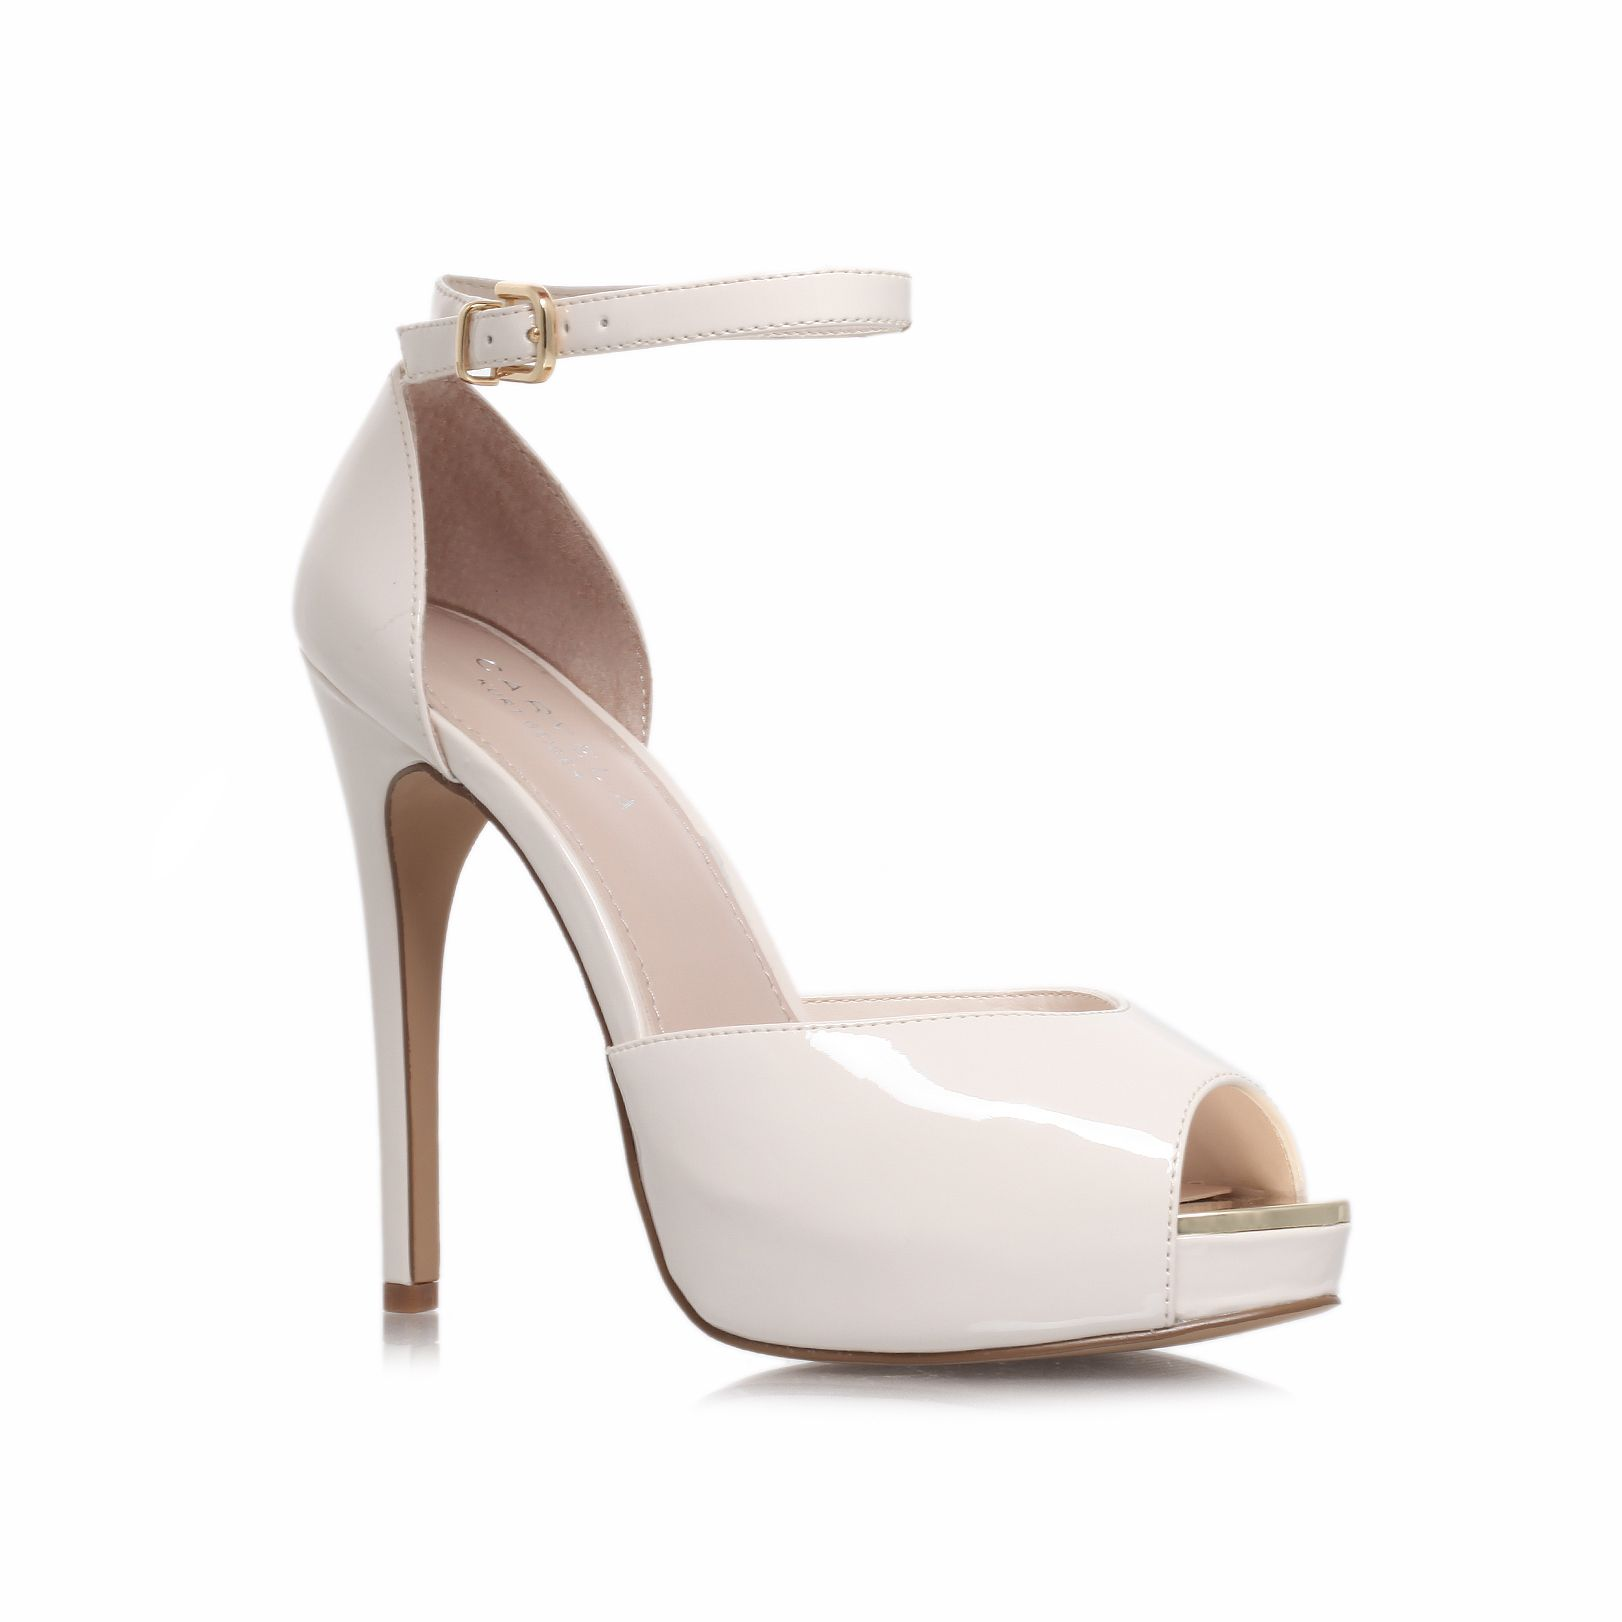 Gossip high heel platform court shoes